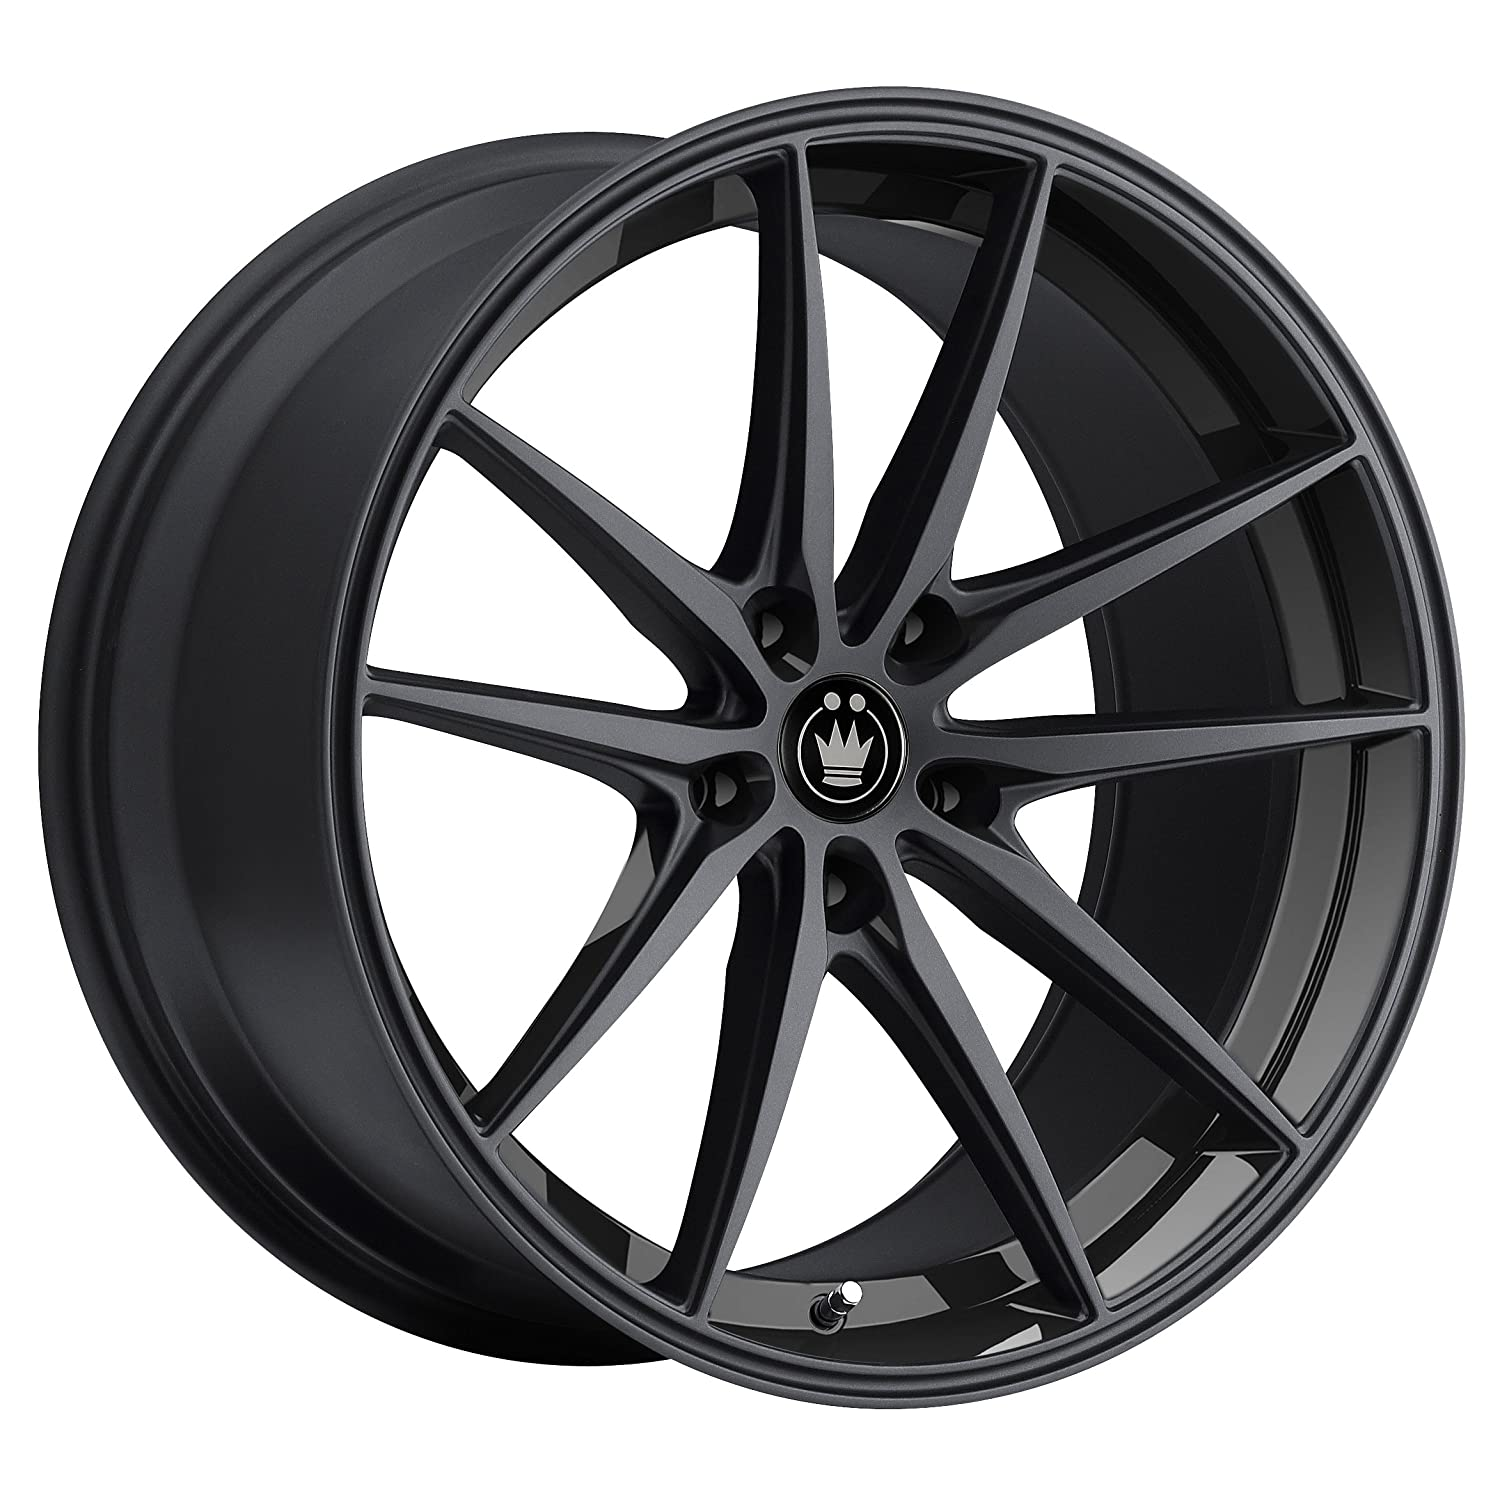 Konig OS67514405 OVERSTEER Gloss Black Wheel (16x7.5'/5x114.3mm, 45mm offset)